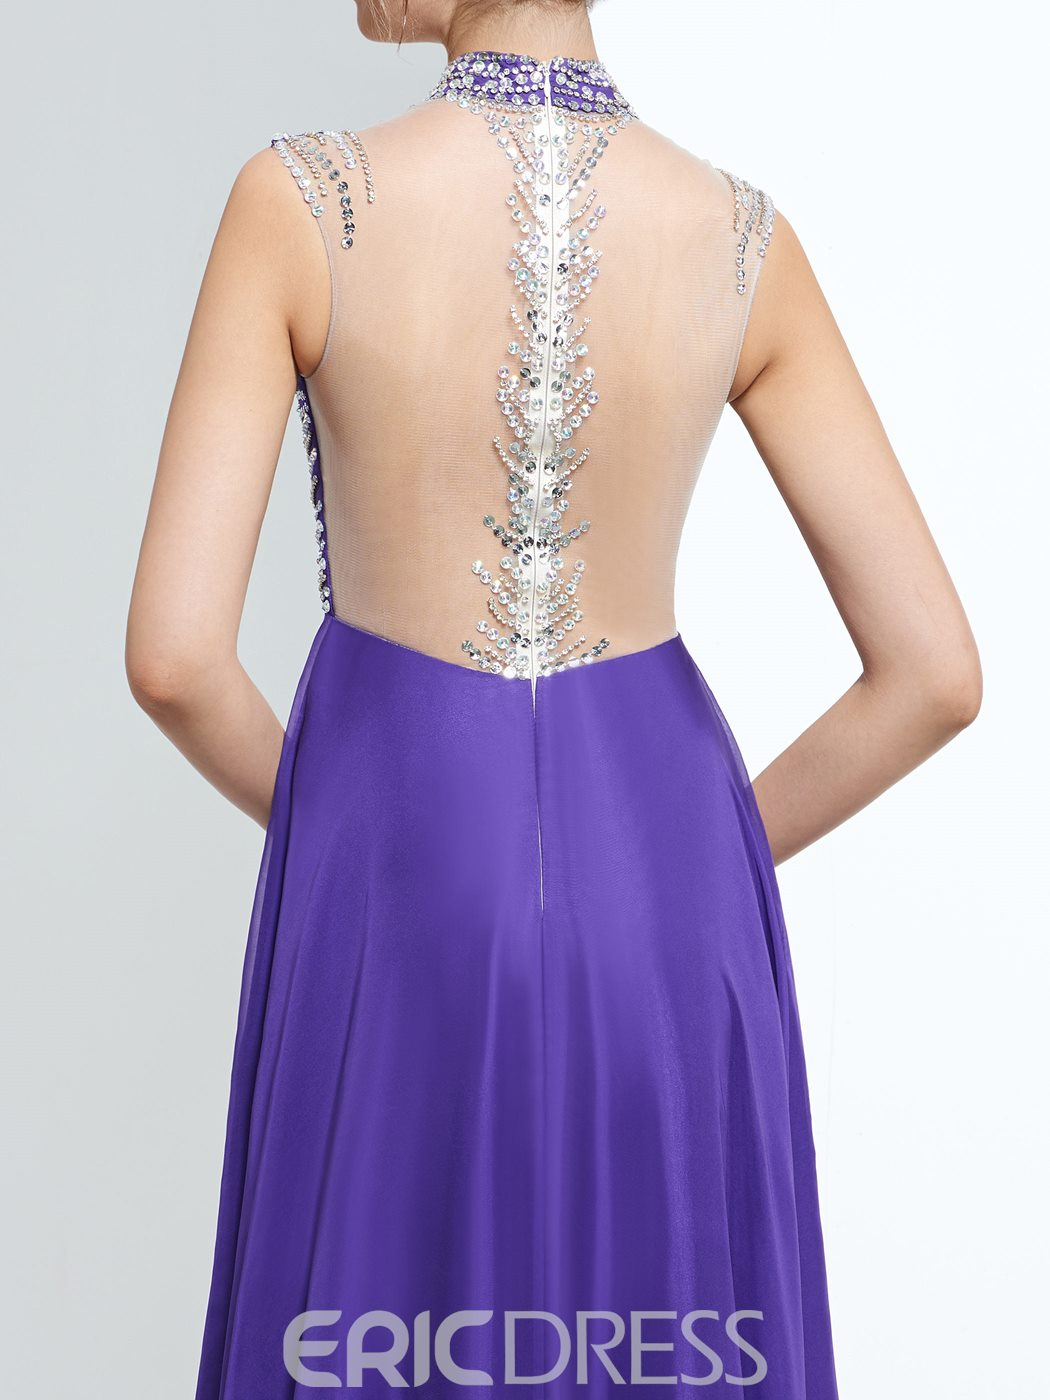 Ericdress A-Line High Neck Cap Sleeves Beading Floor-Length Prom Dress